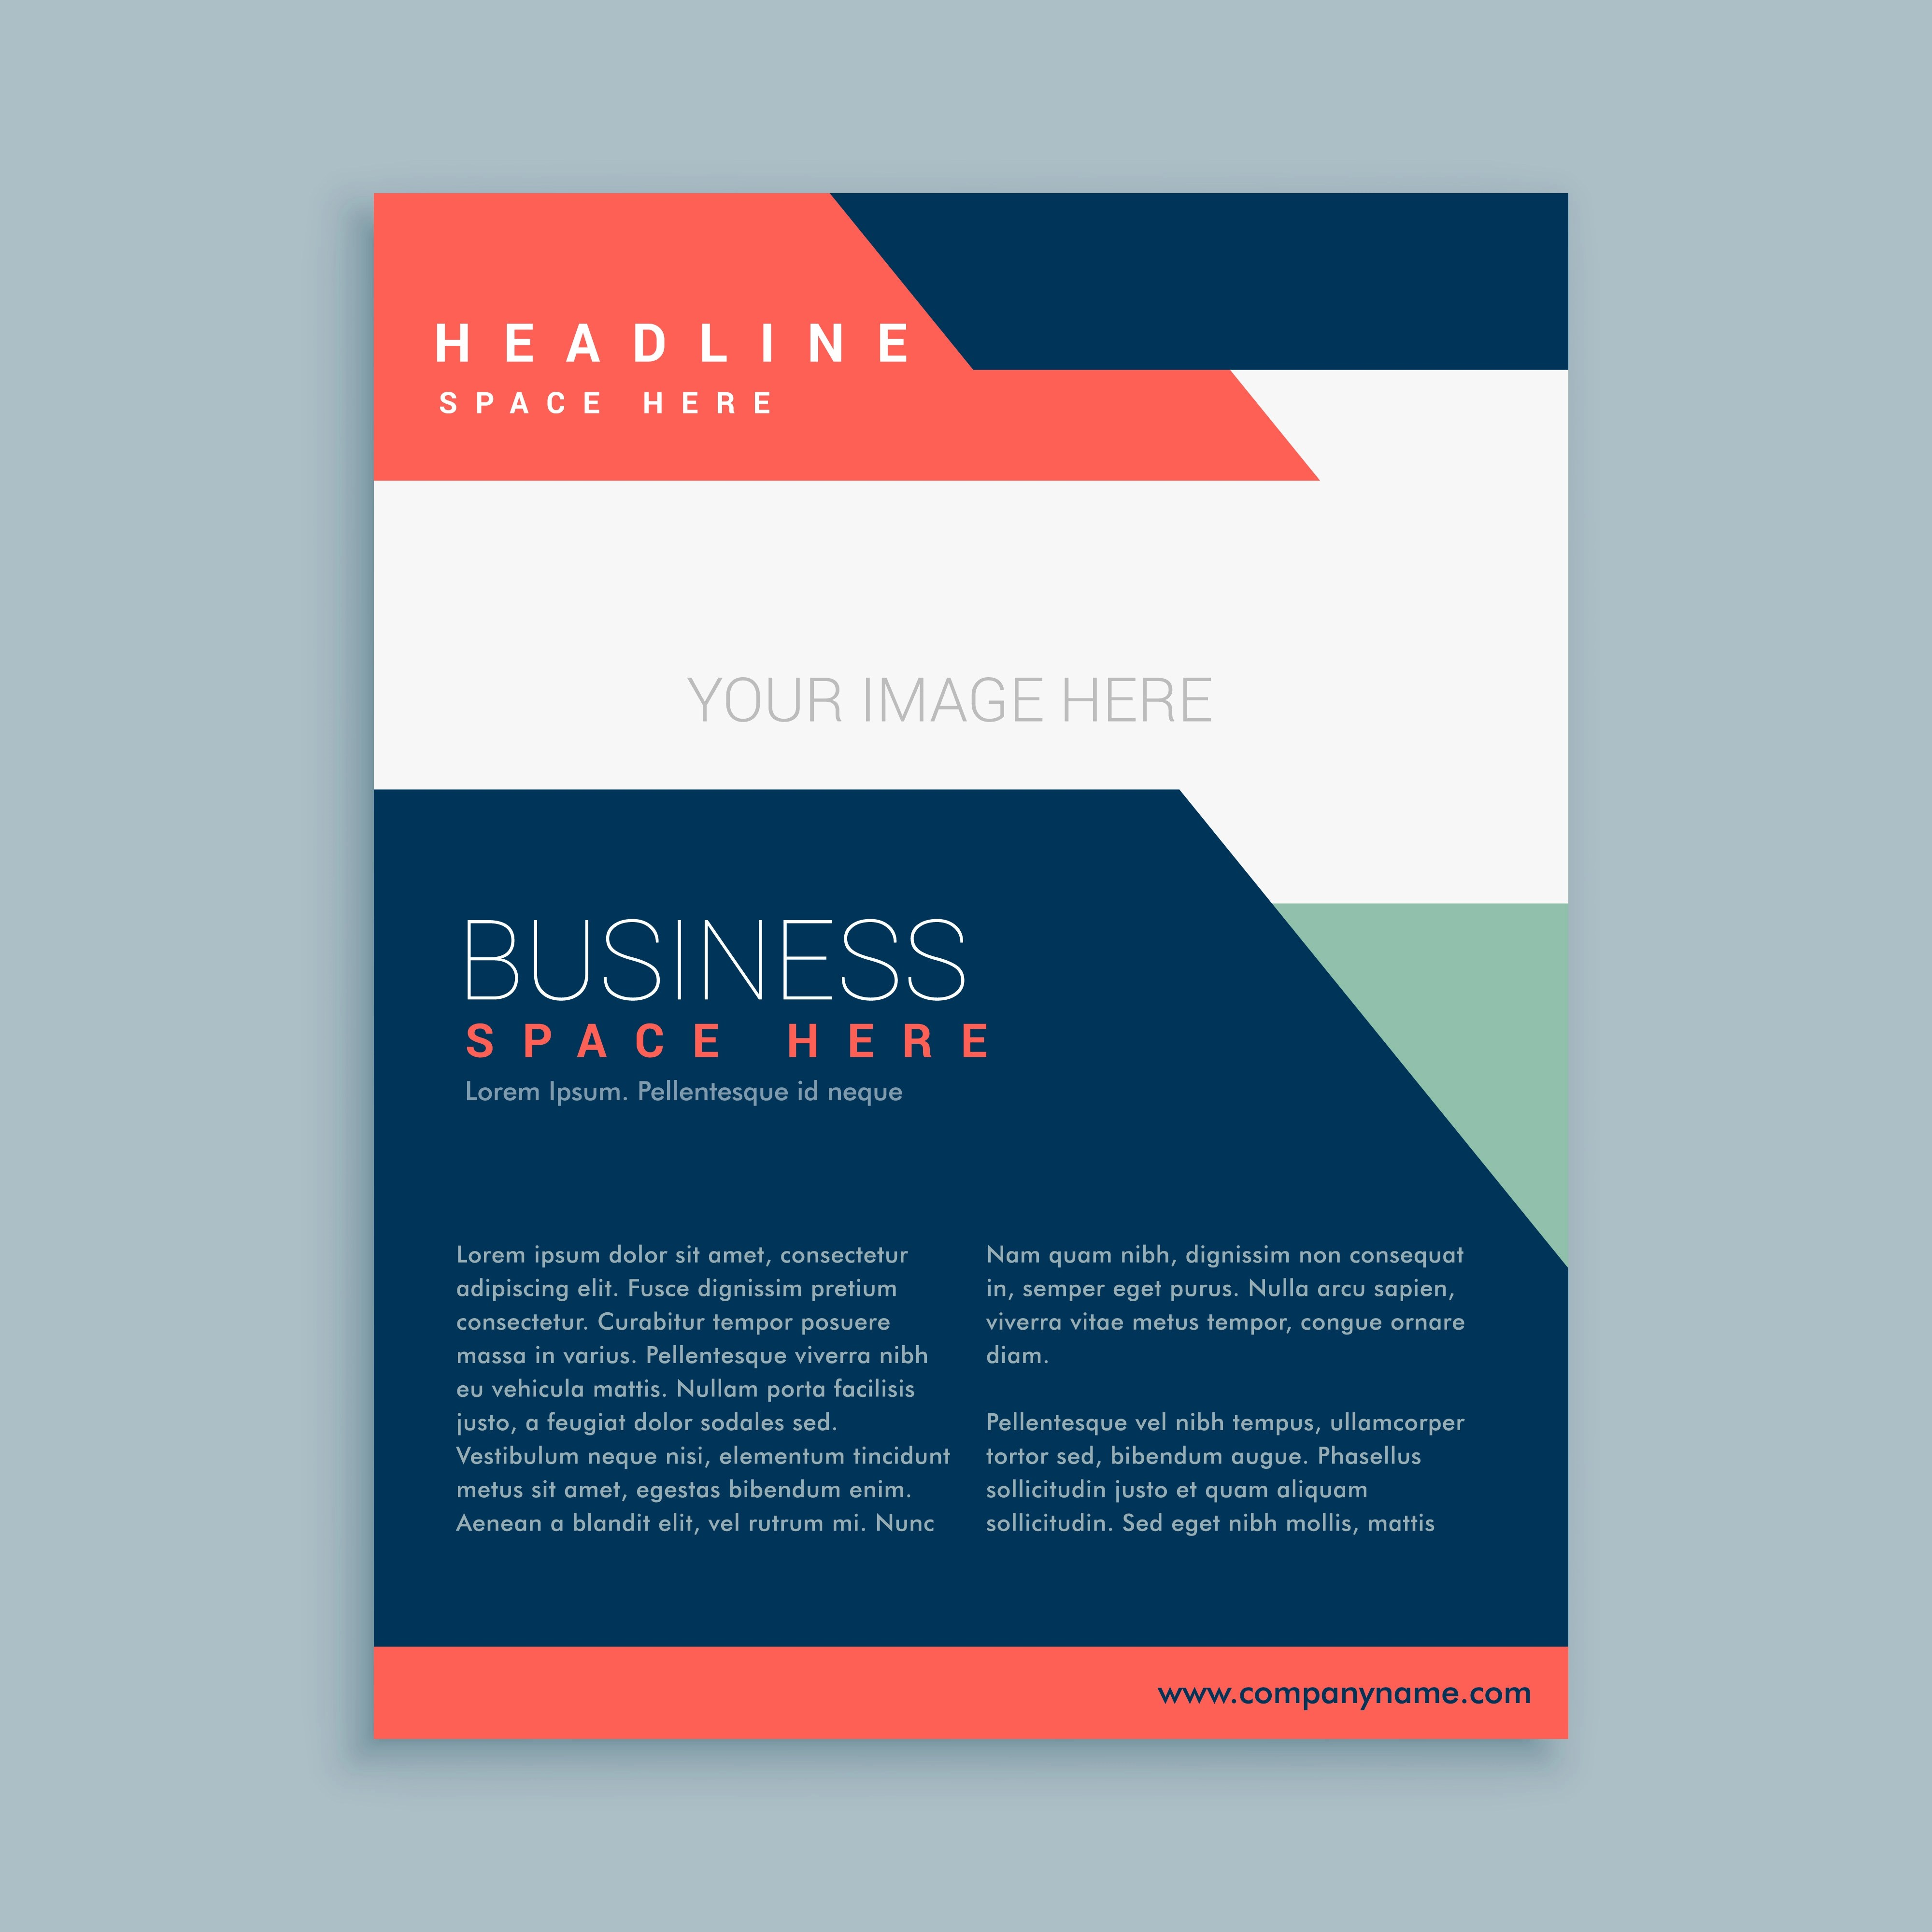 abstract business brochure template design  Download Free Vector Art Stock Graphics  Images